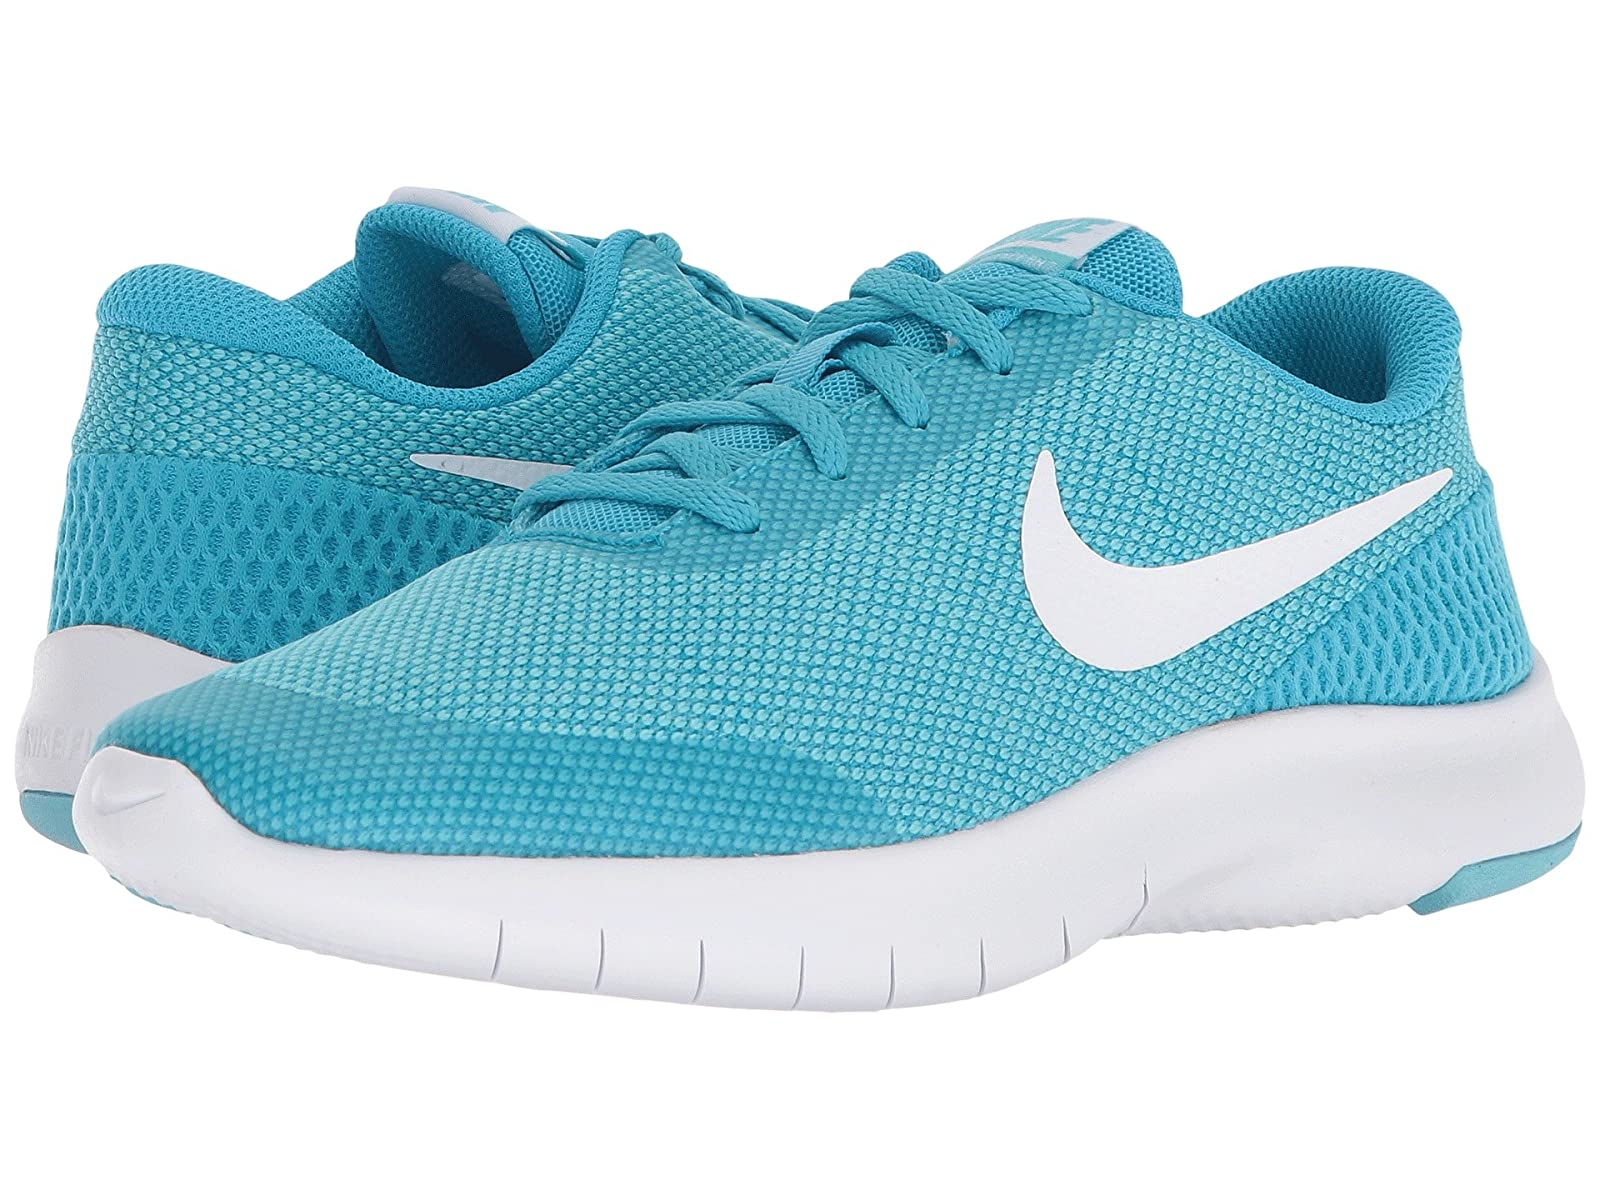 Nike Kids Flex Experience Run 7 (Big Kid)Atmospheric grades have affordable shoes